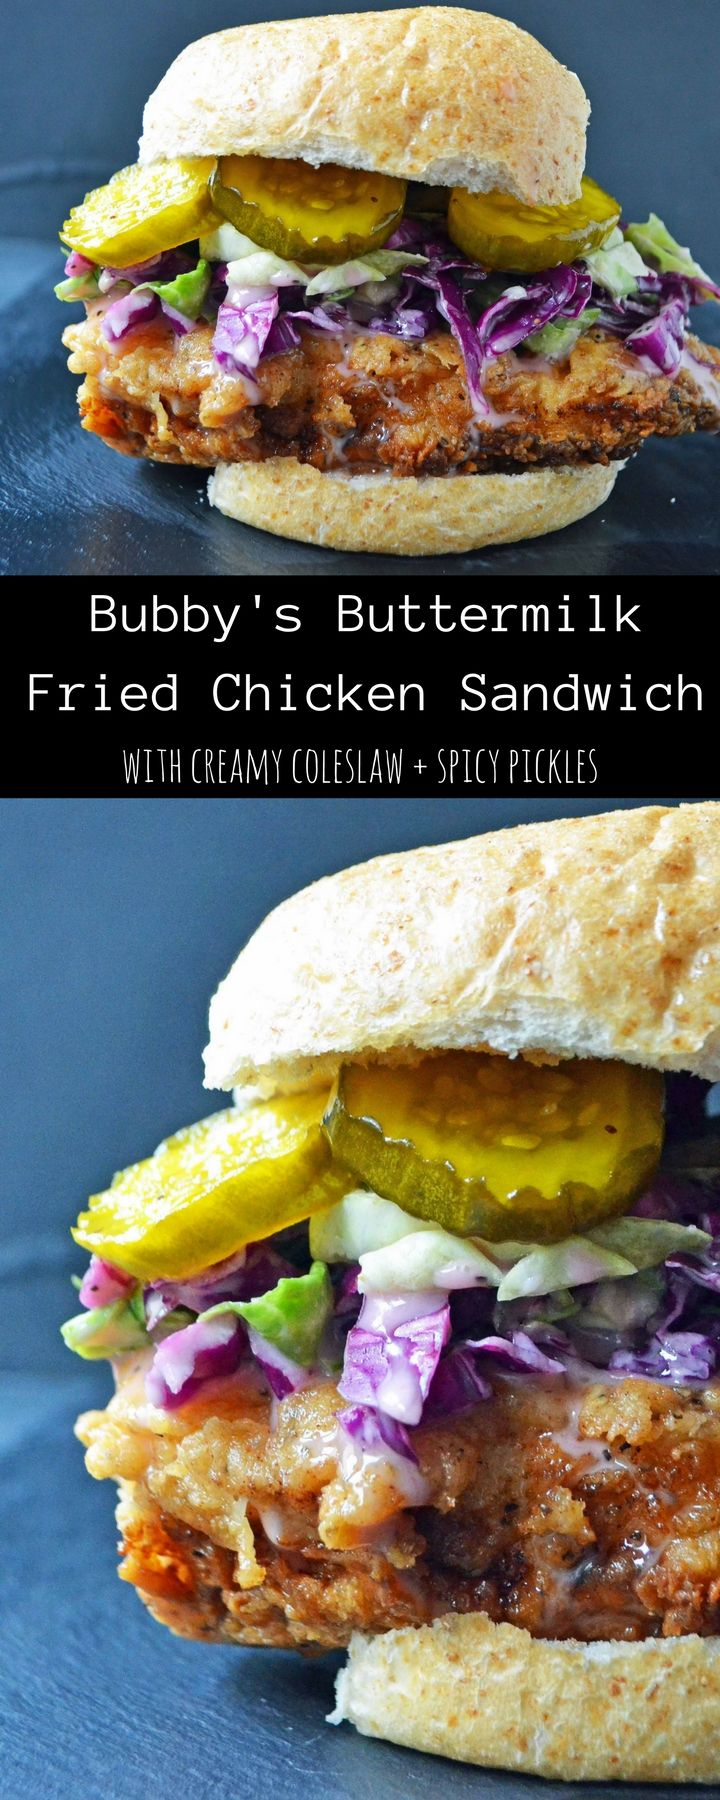 Bubby's Buttermilk Fried Chicken Sandwich with Creamy Coleslaw and Spicy  Pickles. Plus all of the secrets to making perfect fried chicken every single time.